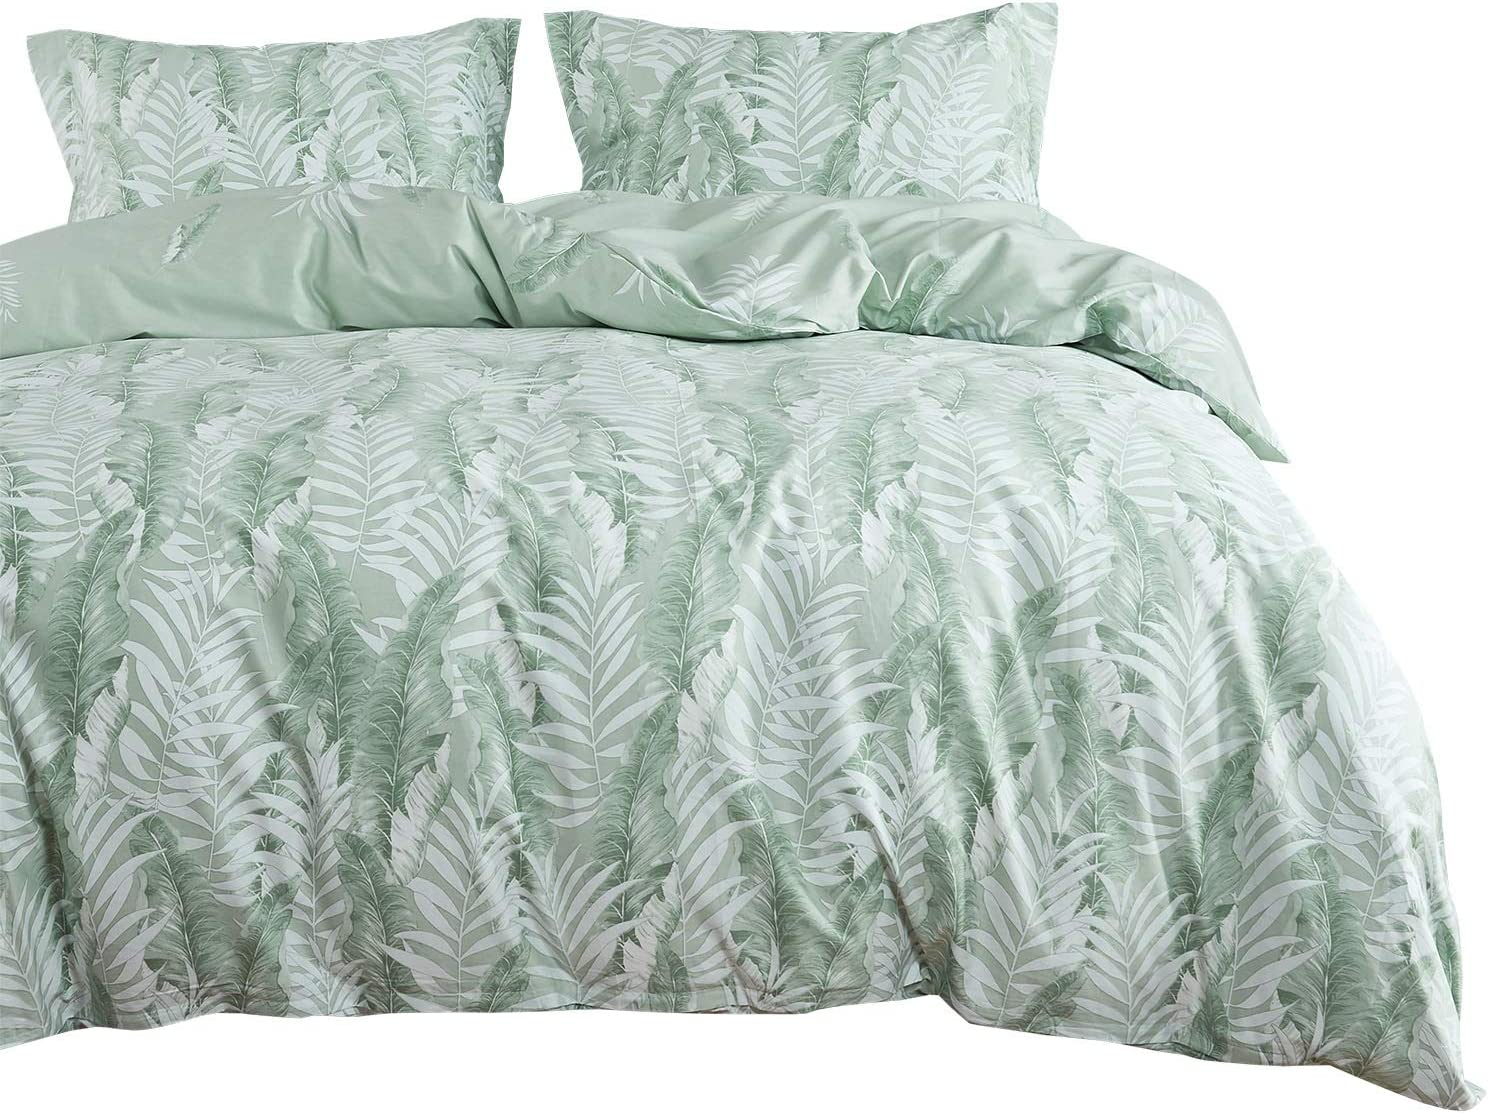 Wake In Cloud - Leaves Comforter Set, 100% Cotton Fabric with Soft Microfiber Fill Bedding, Tropical Palm Banana Tree Pattern Printed in Green White (3pcs, King Size)